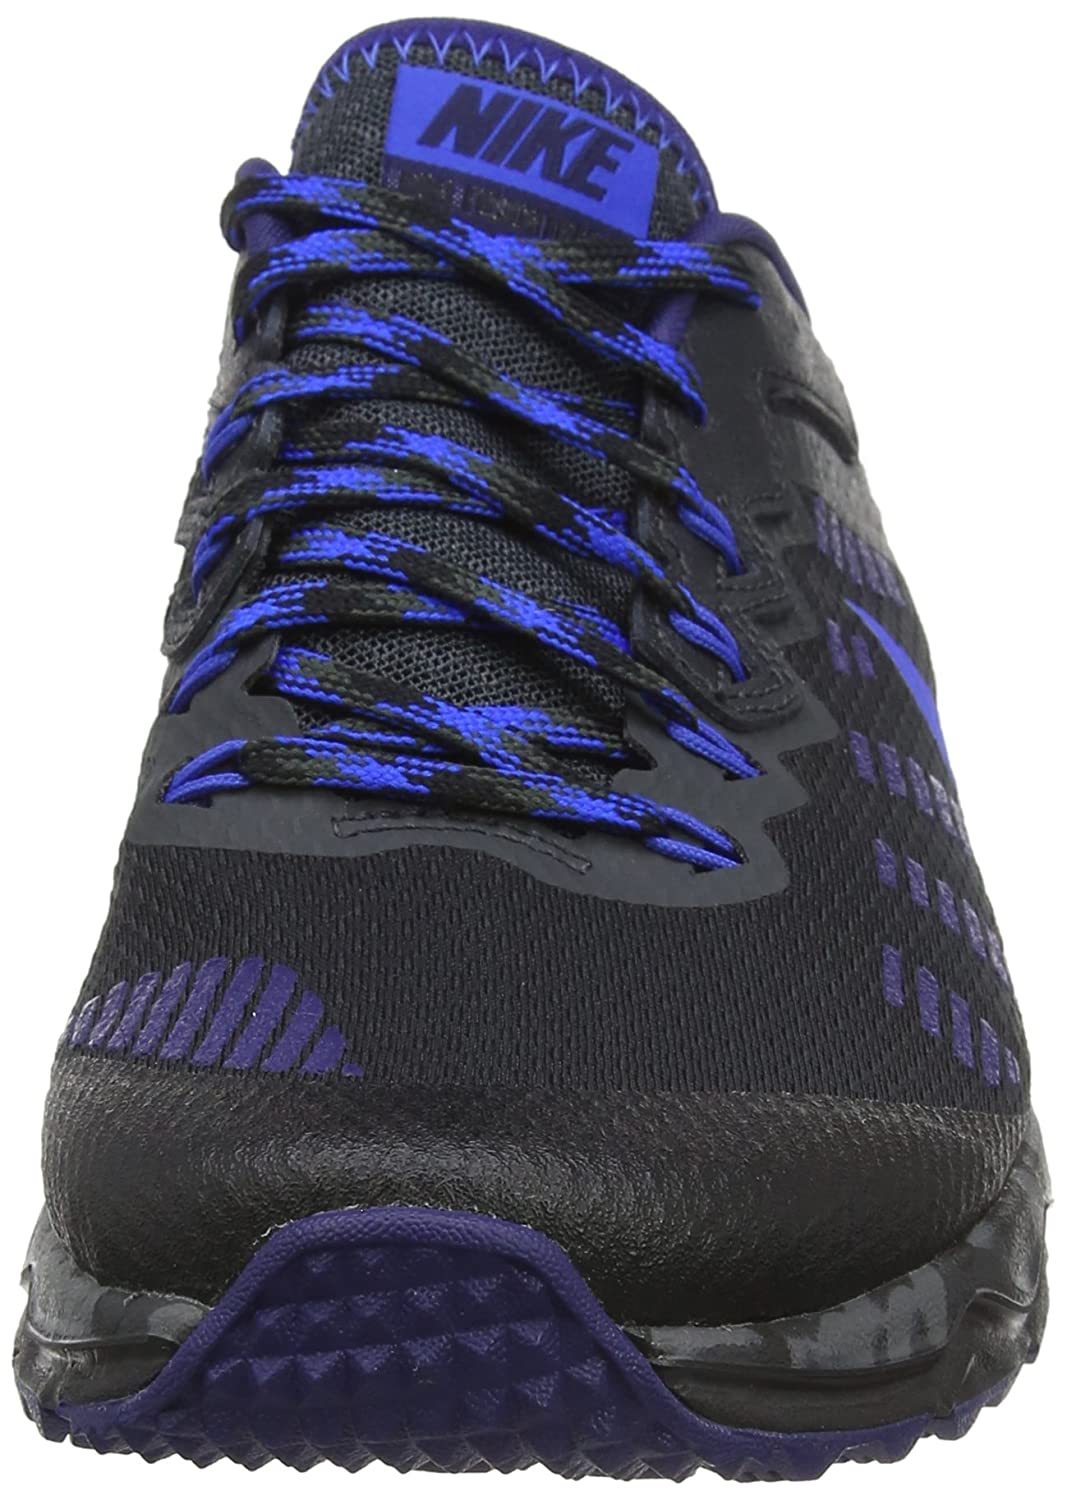 watch 5f0af 3d0a2 Amazon.com   NIKE Men s Dual Fusion Trail 2 Running Shoe (8 D(M) US,  Black Hyper Cobalt Anthracite Loyal Blue)   Trail Running